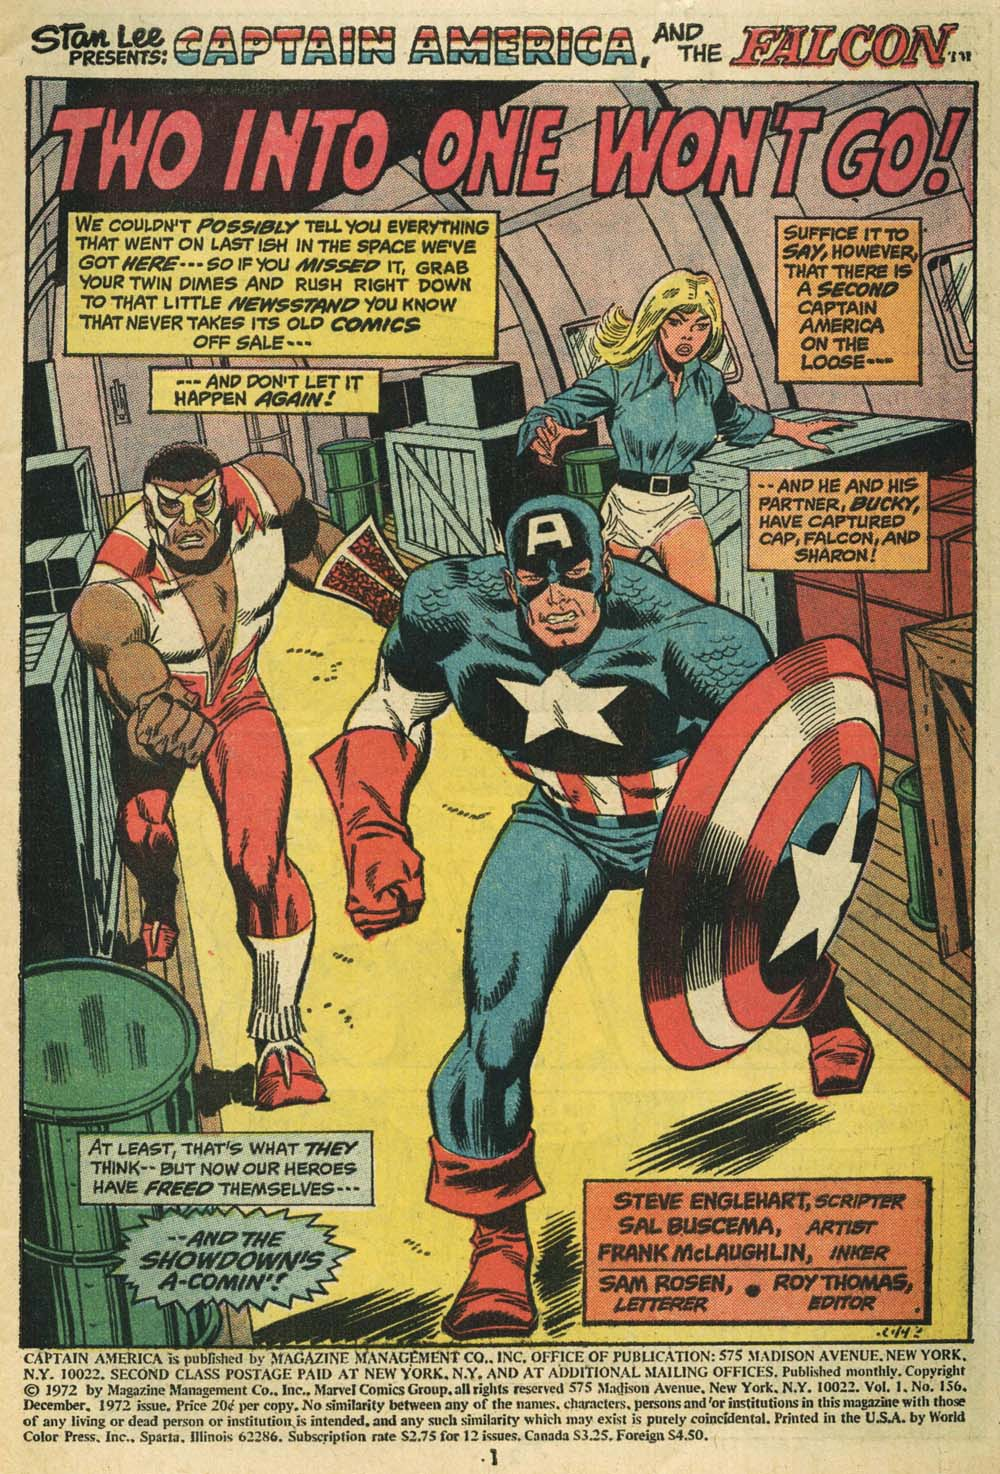 Captain_America156_01 by sal buscema